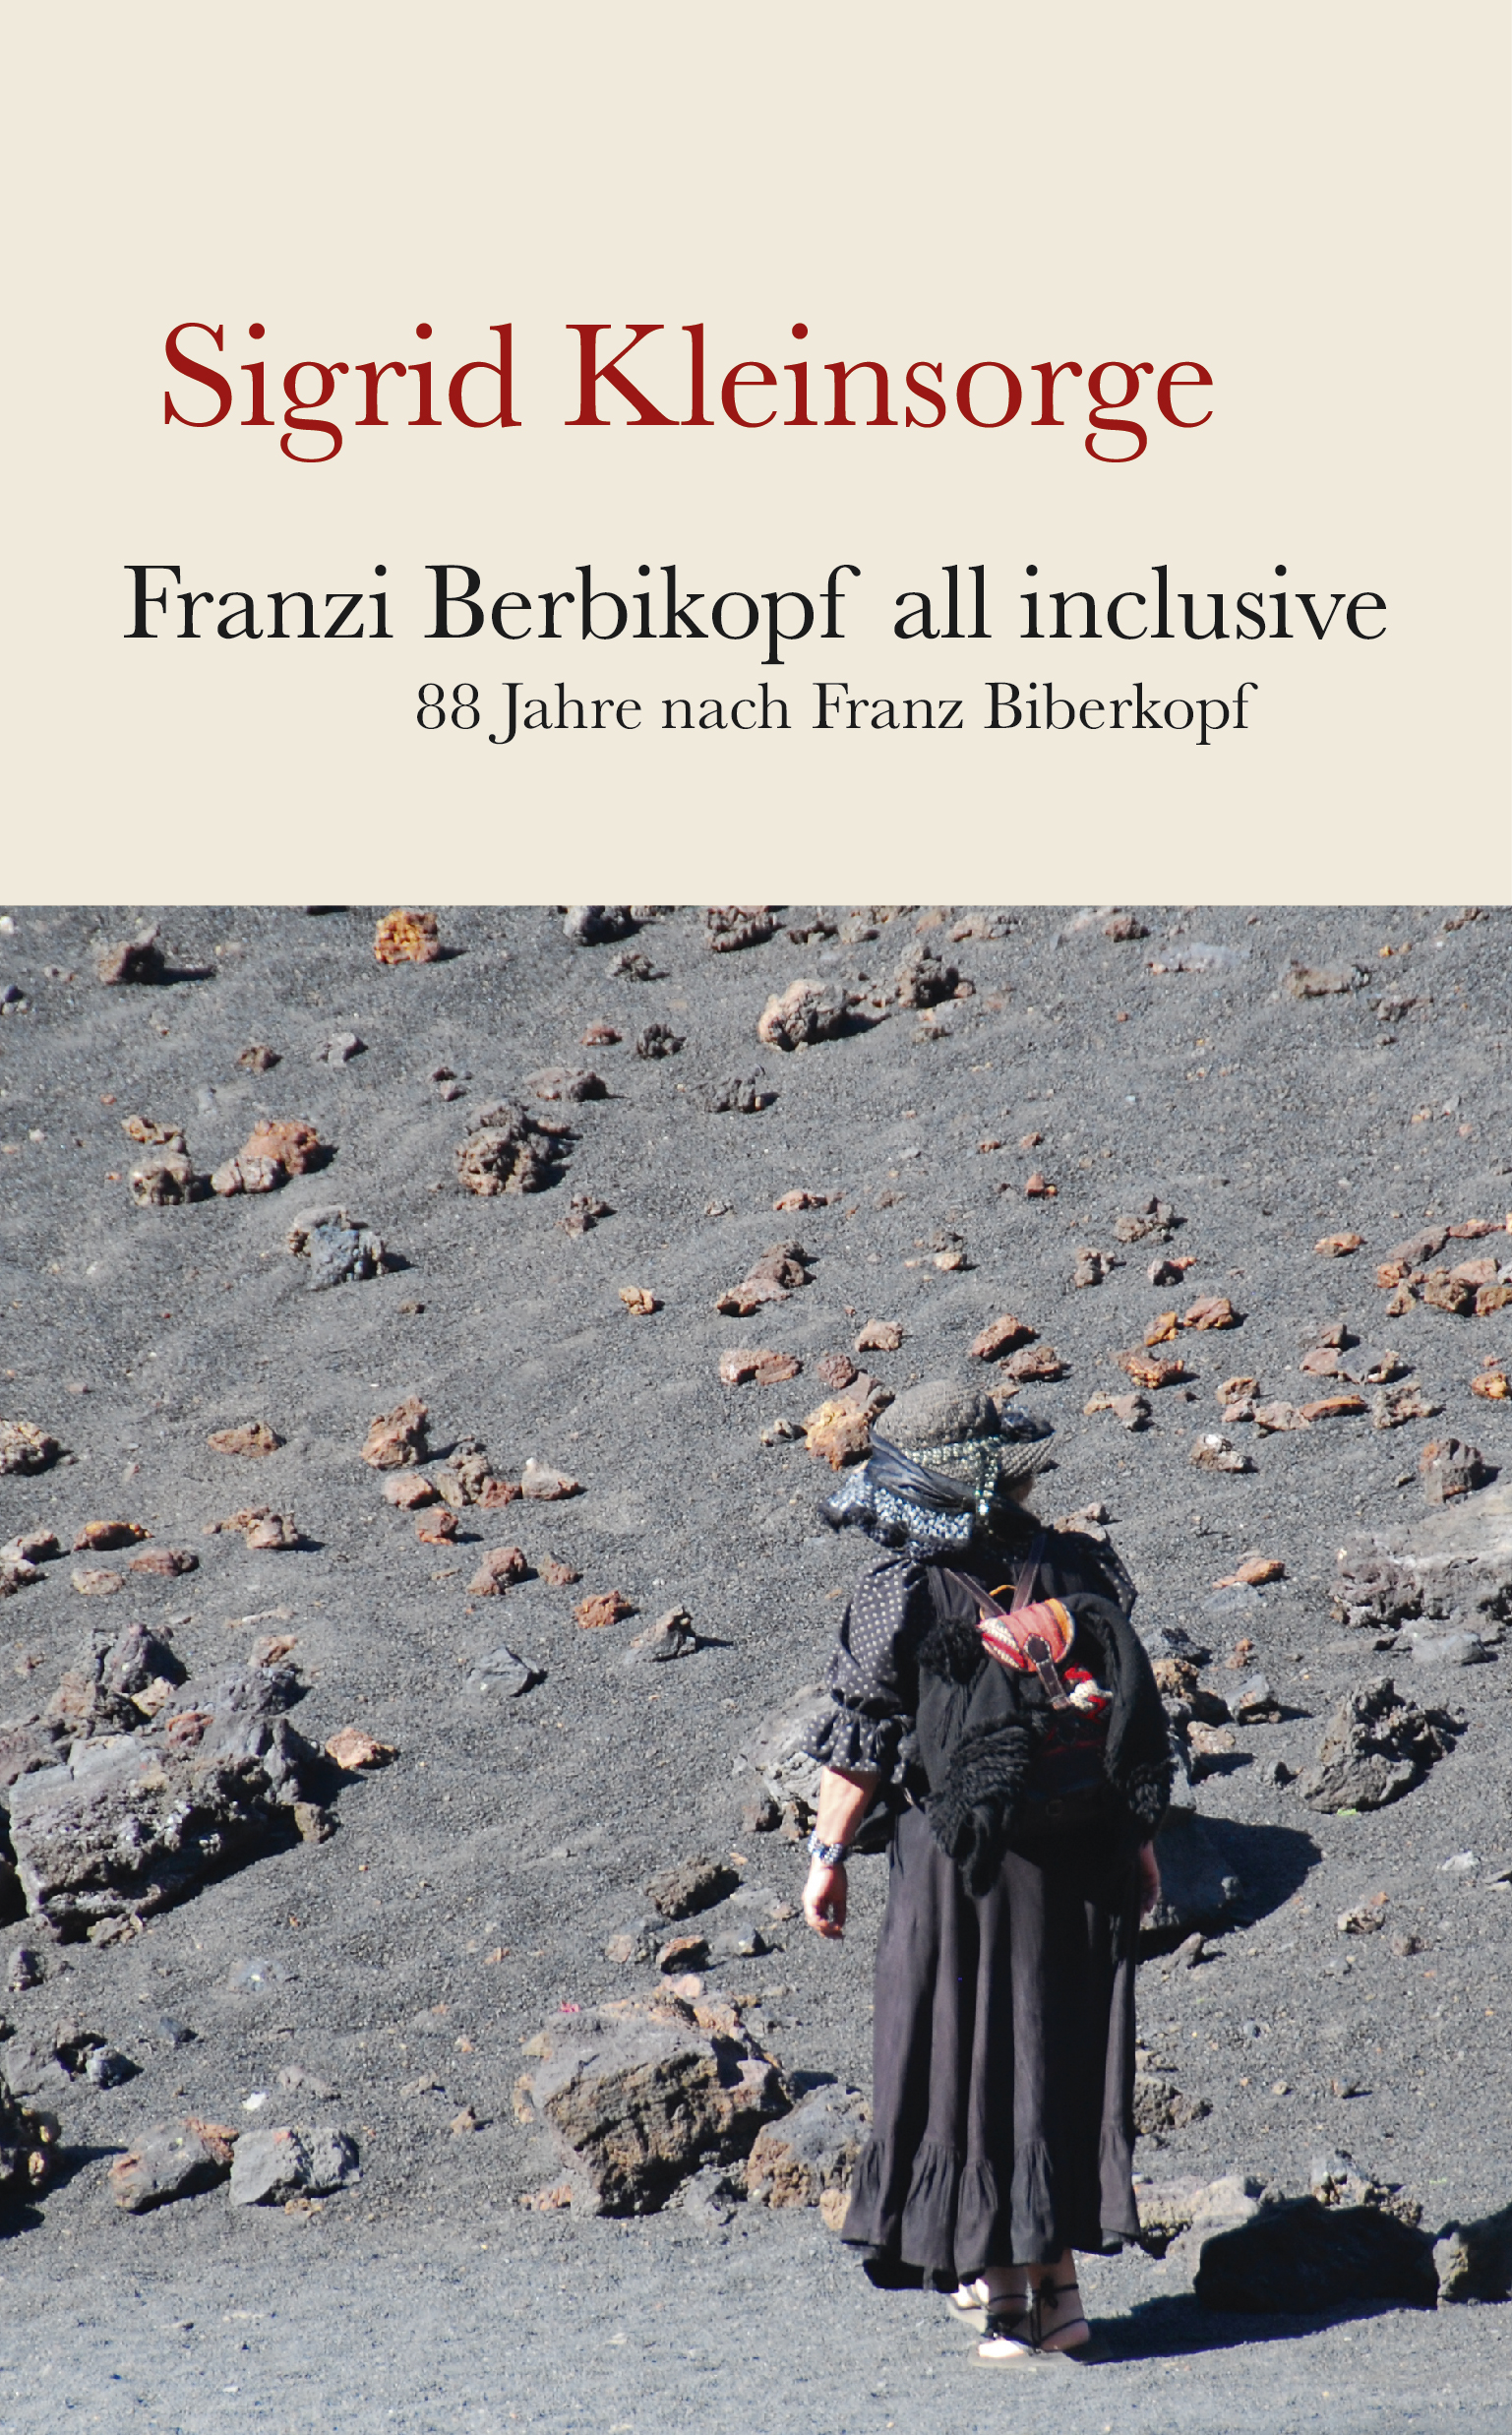 Franzi Berbikopf all-inclusive